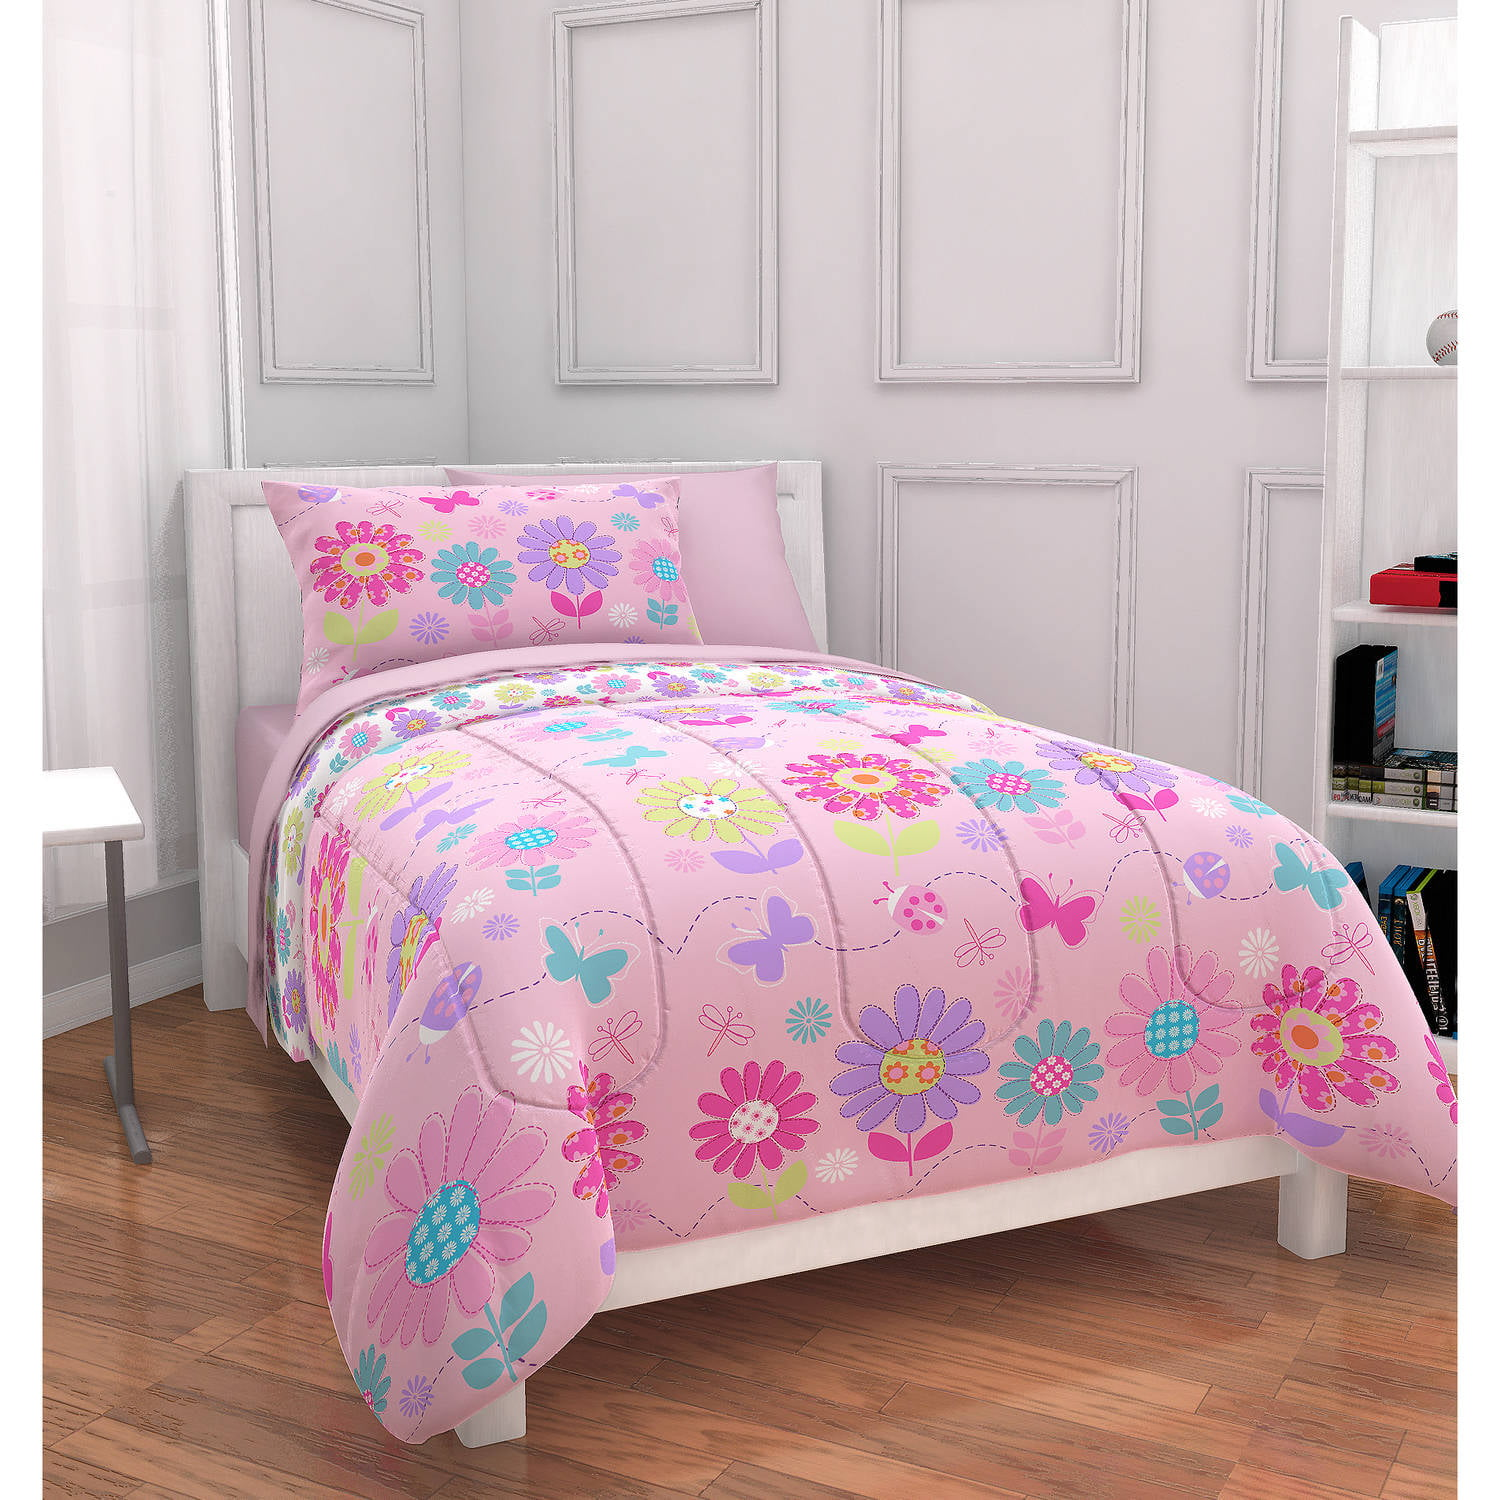 garden f ivy set room butterfly comforter collections lambs